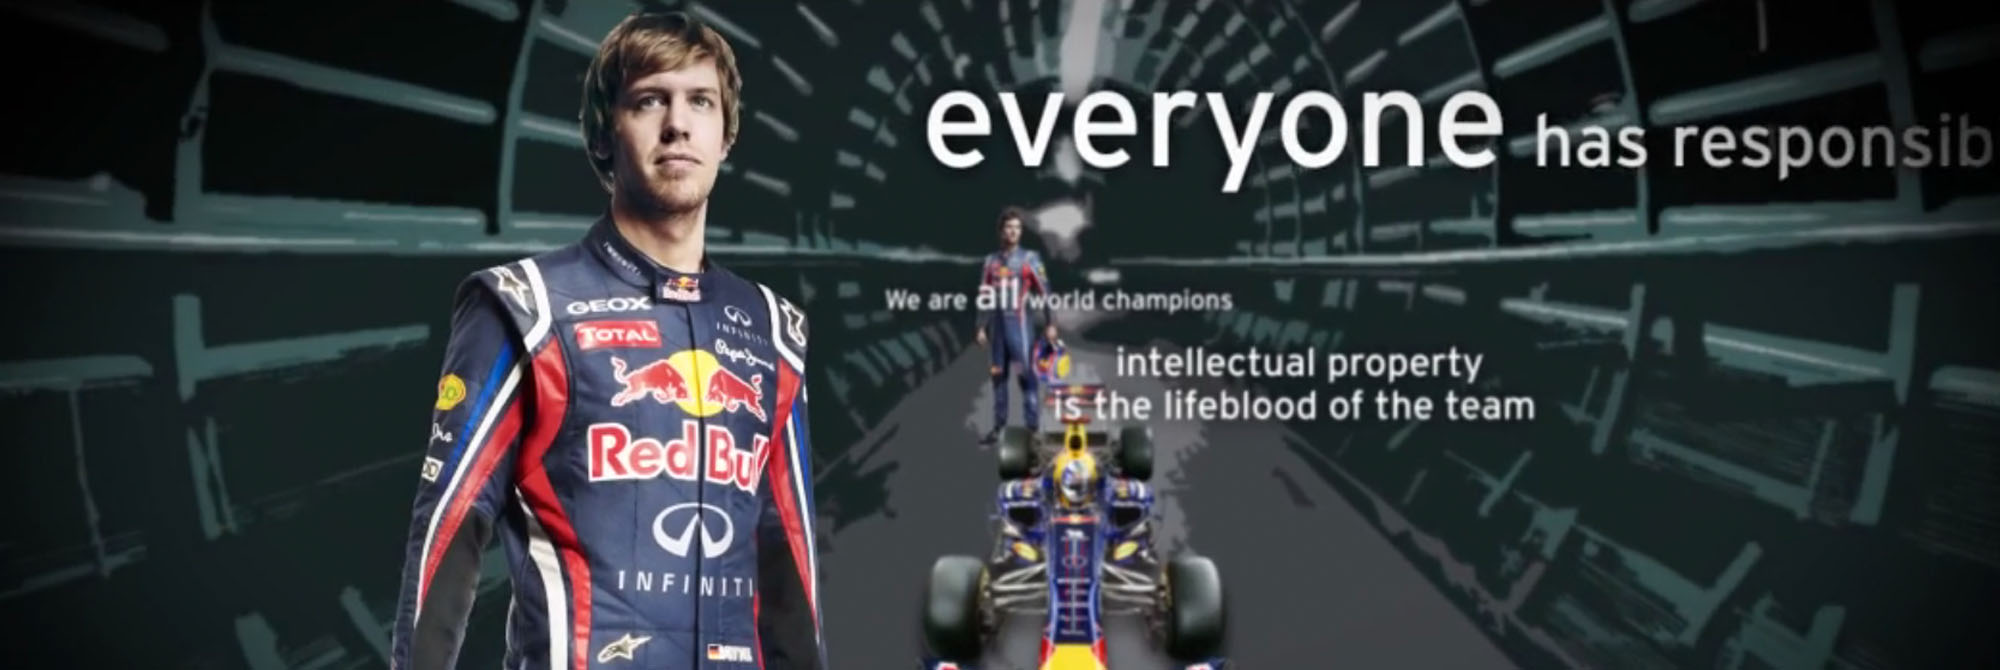 Film Graphics for Redbull Racing